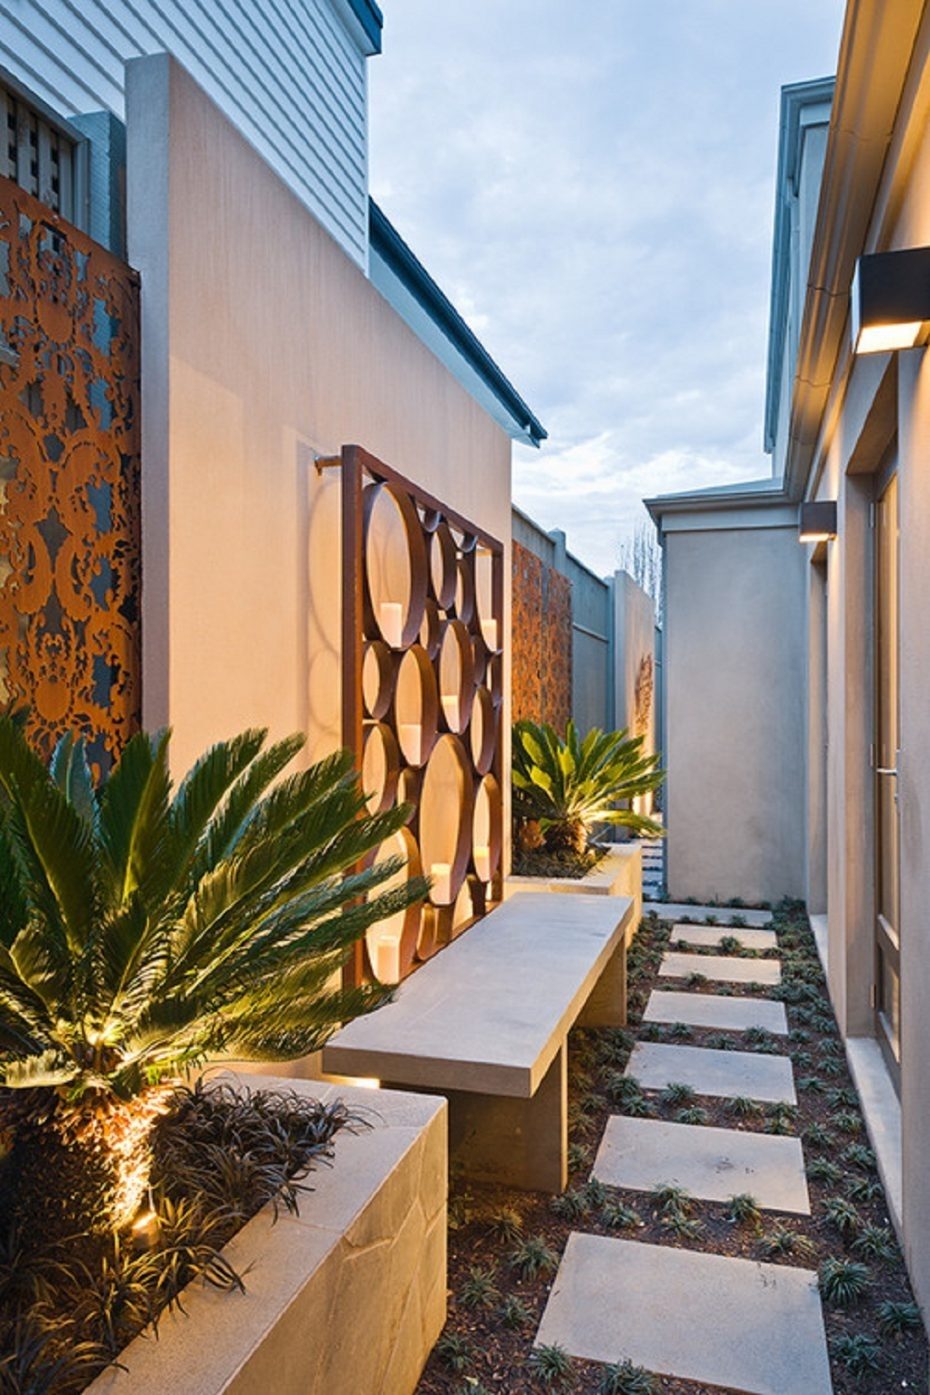 Wall: Outdoor Wall Art Idea For Entrance Furnished With Bench And With Regard To 2018 Outdoor Wall Art (View 14 of 15)